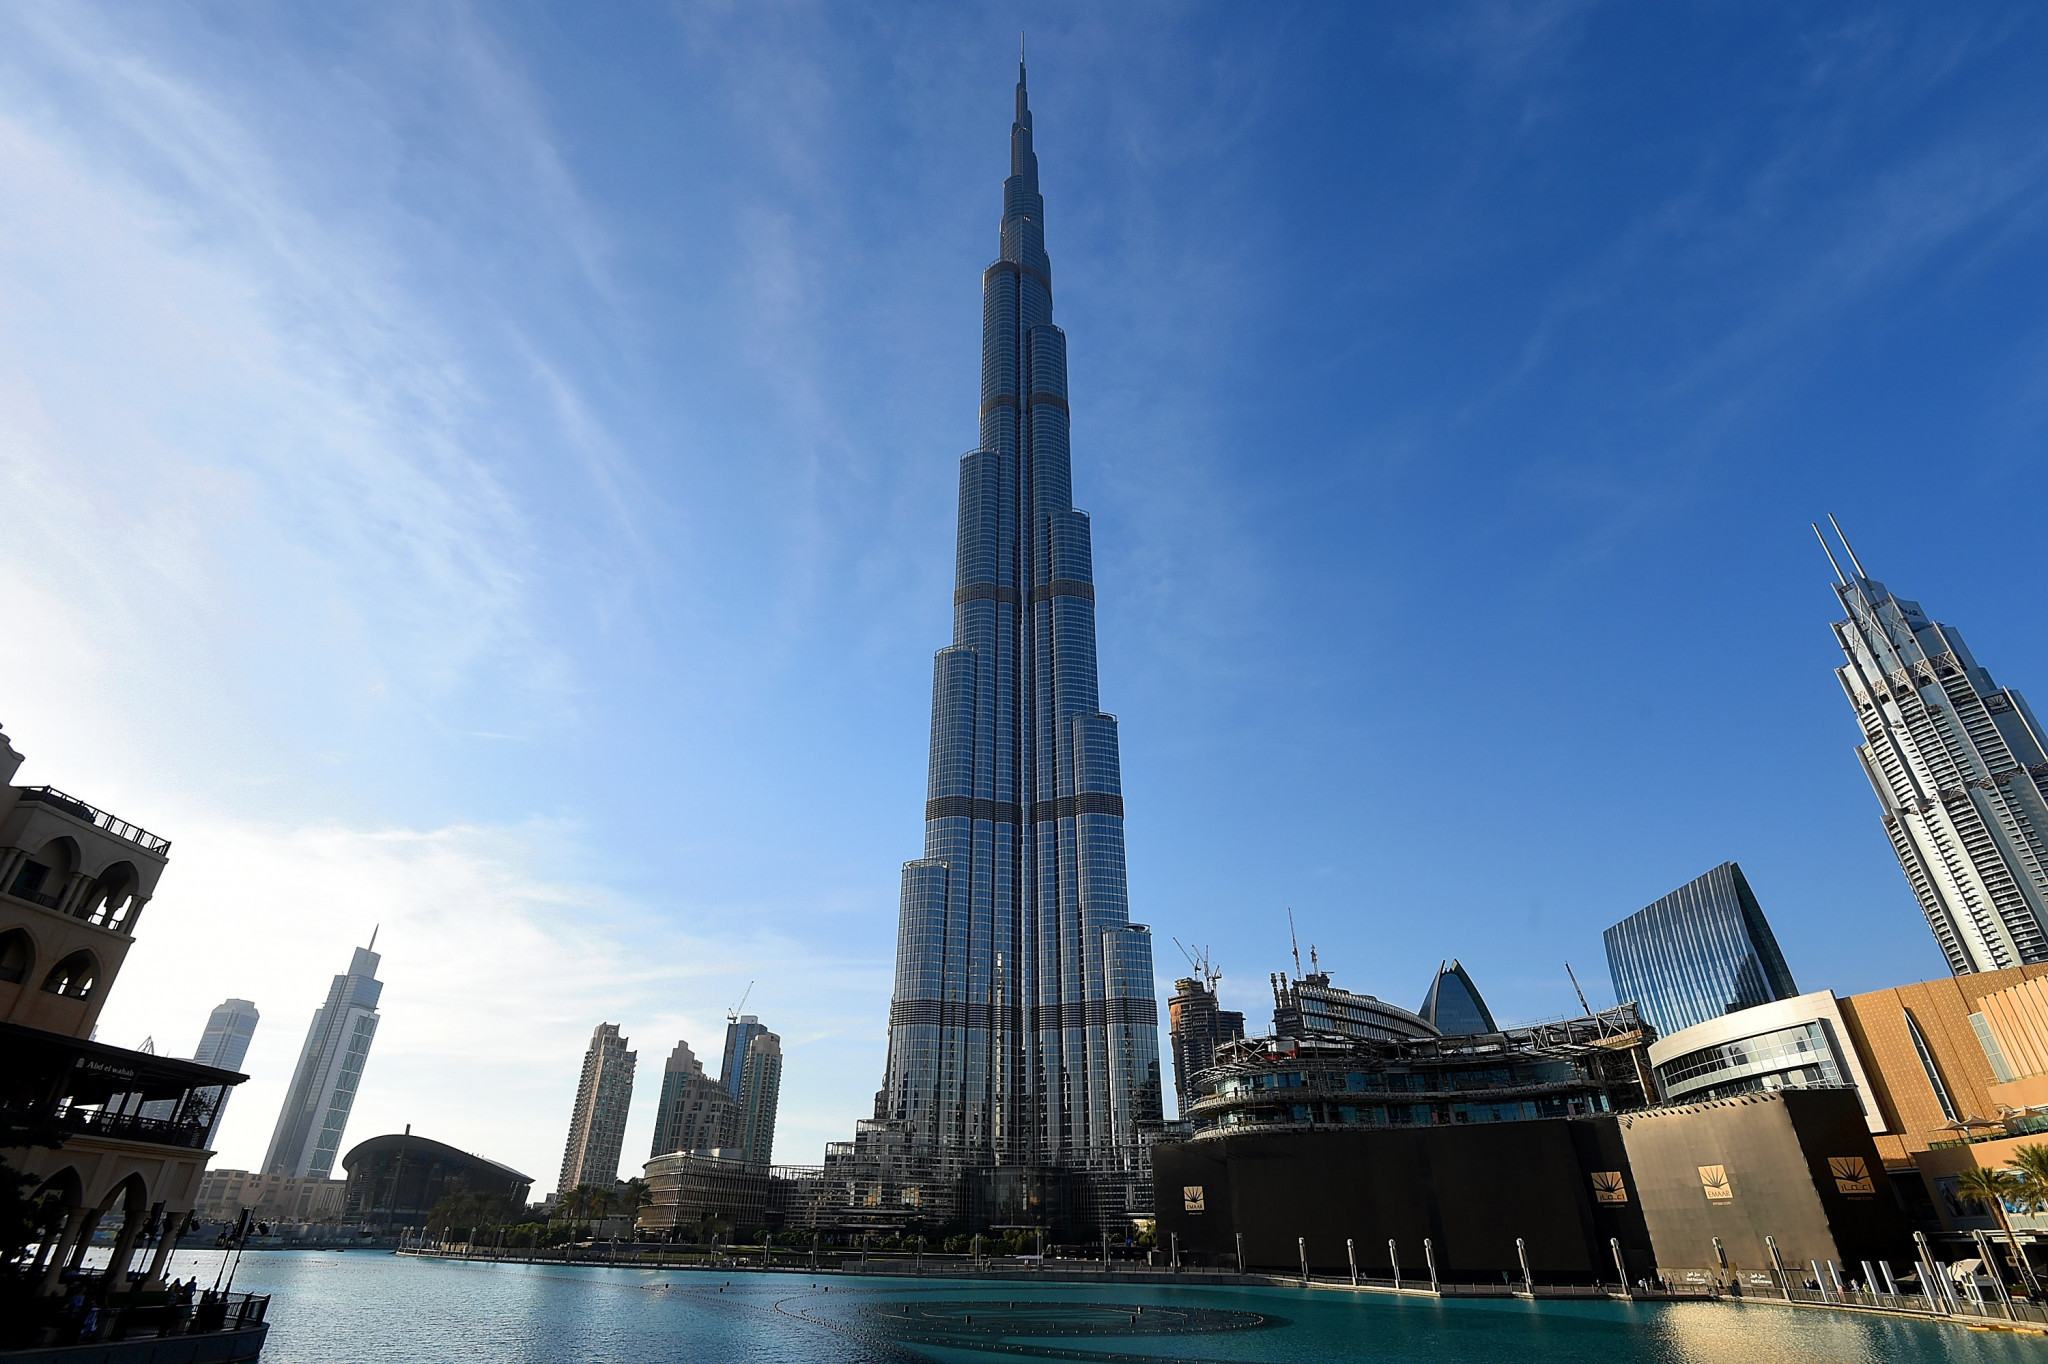 Dubai to host hybrid Olympic Council of Asia General Assembly in November